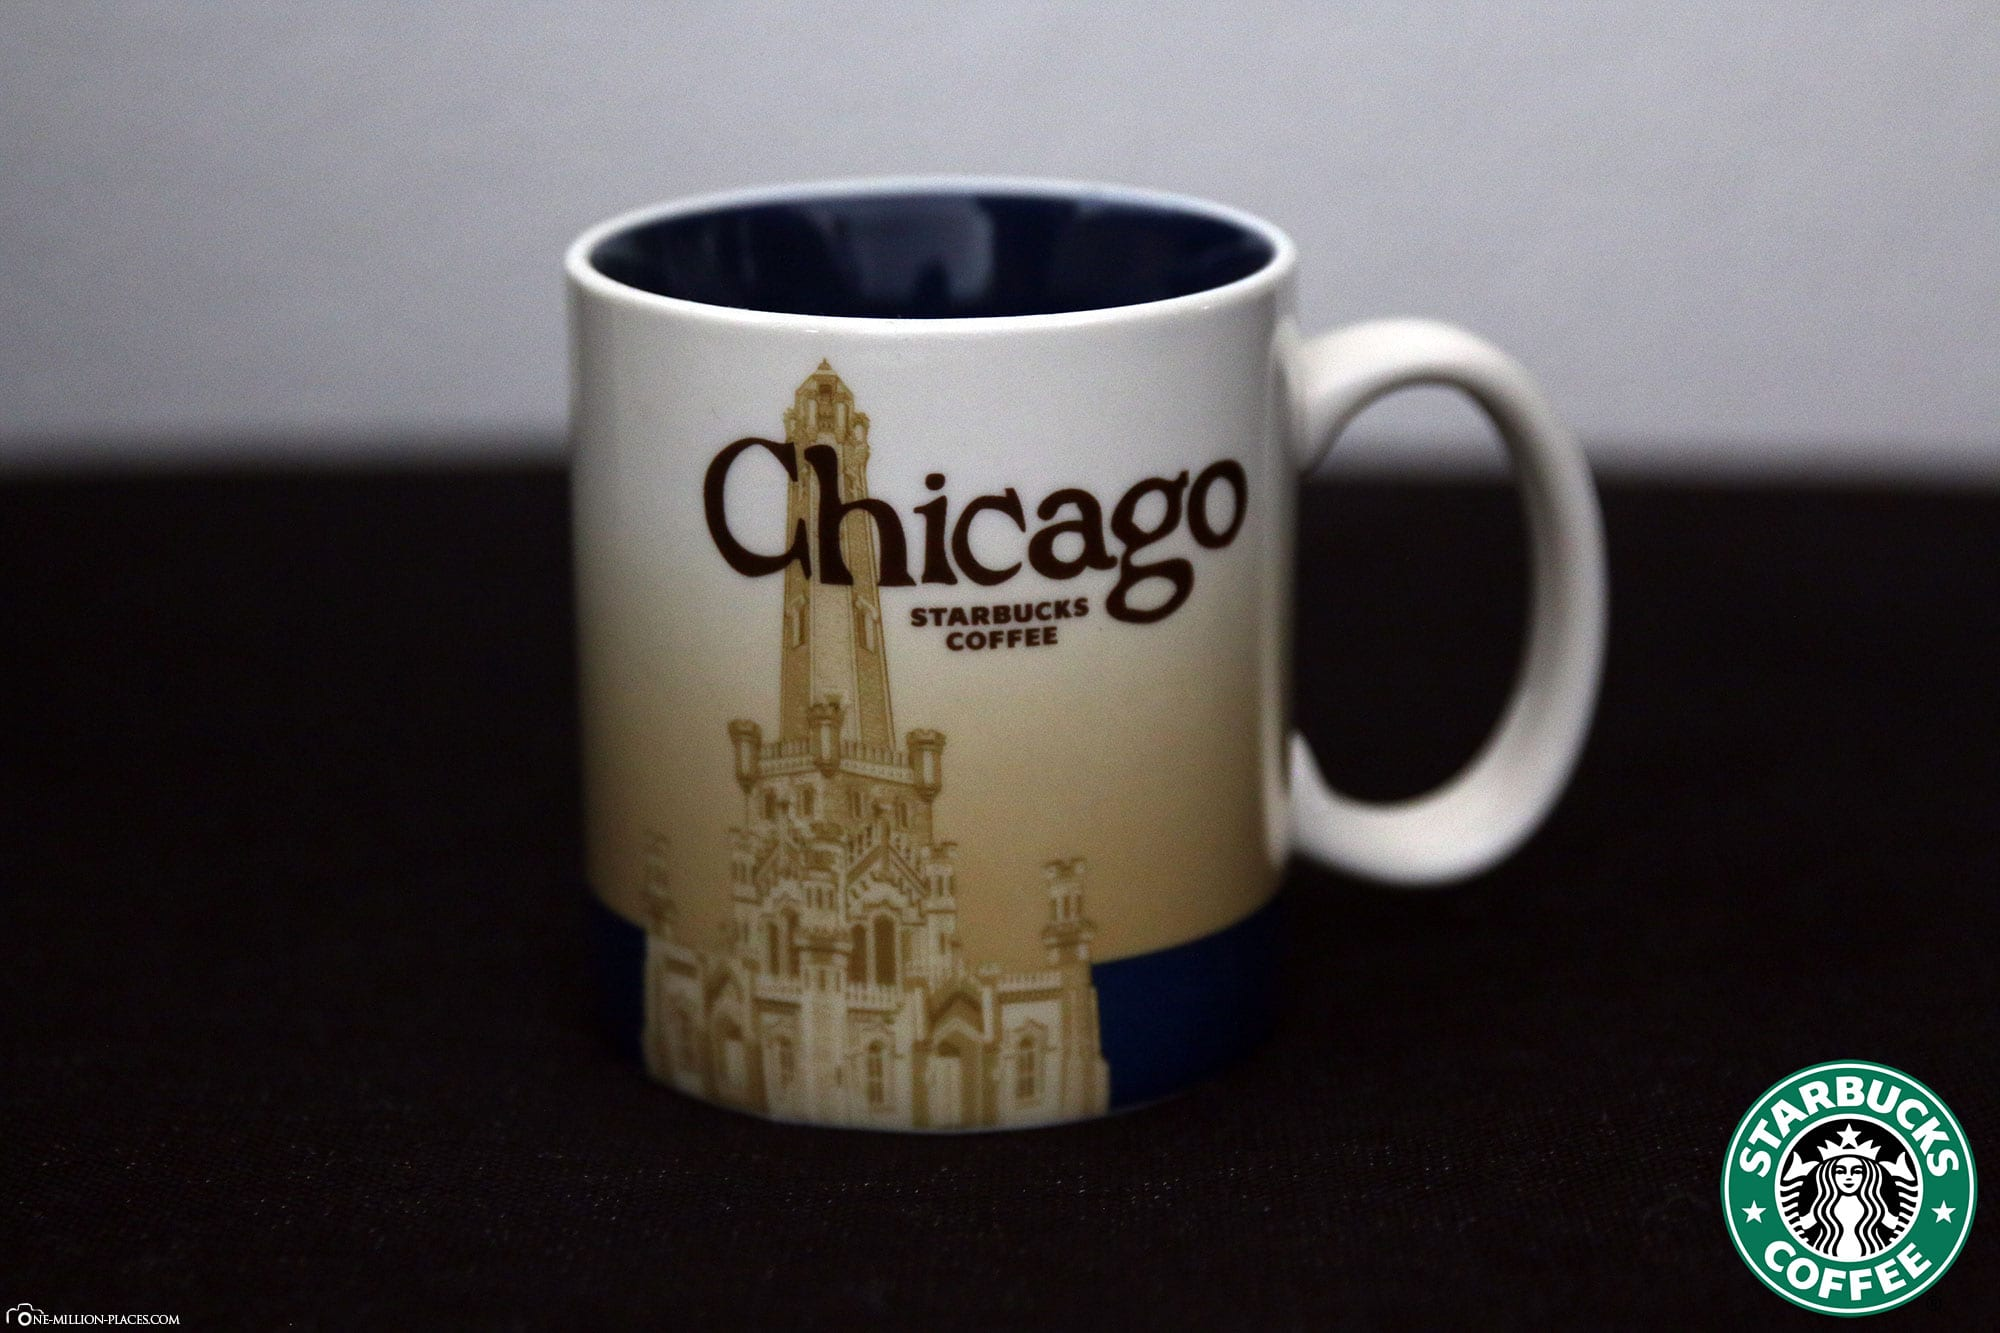 Chicago, Starbucks Cup, Global Icon Series, City Mugs, Collection, USA, Travelreport